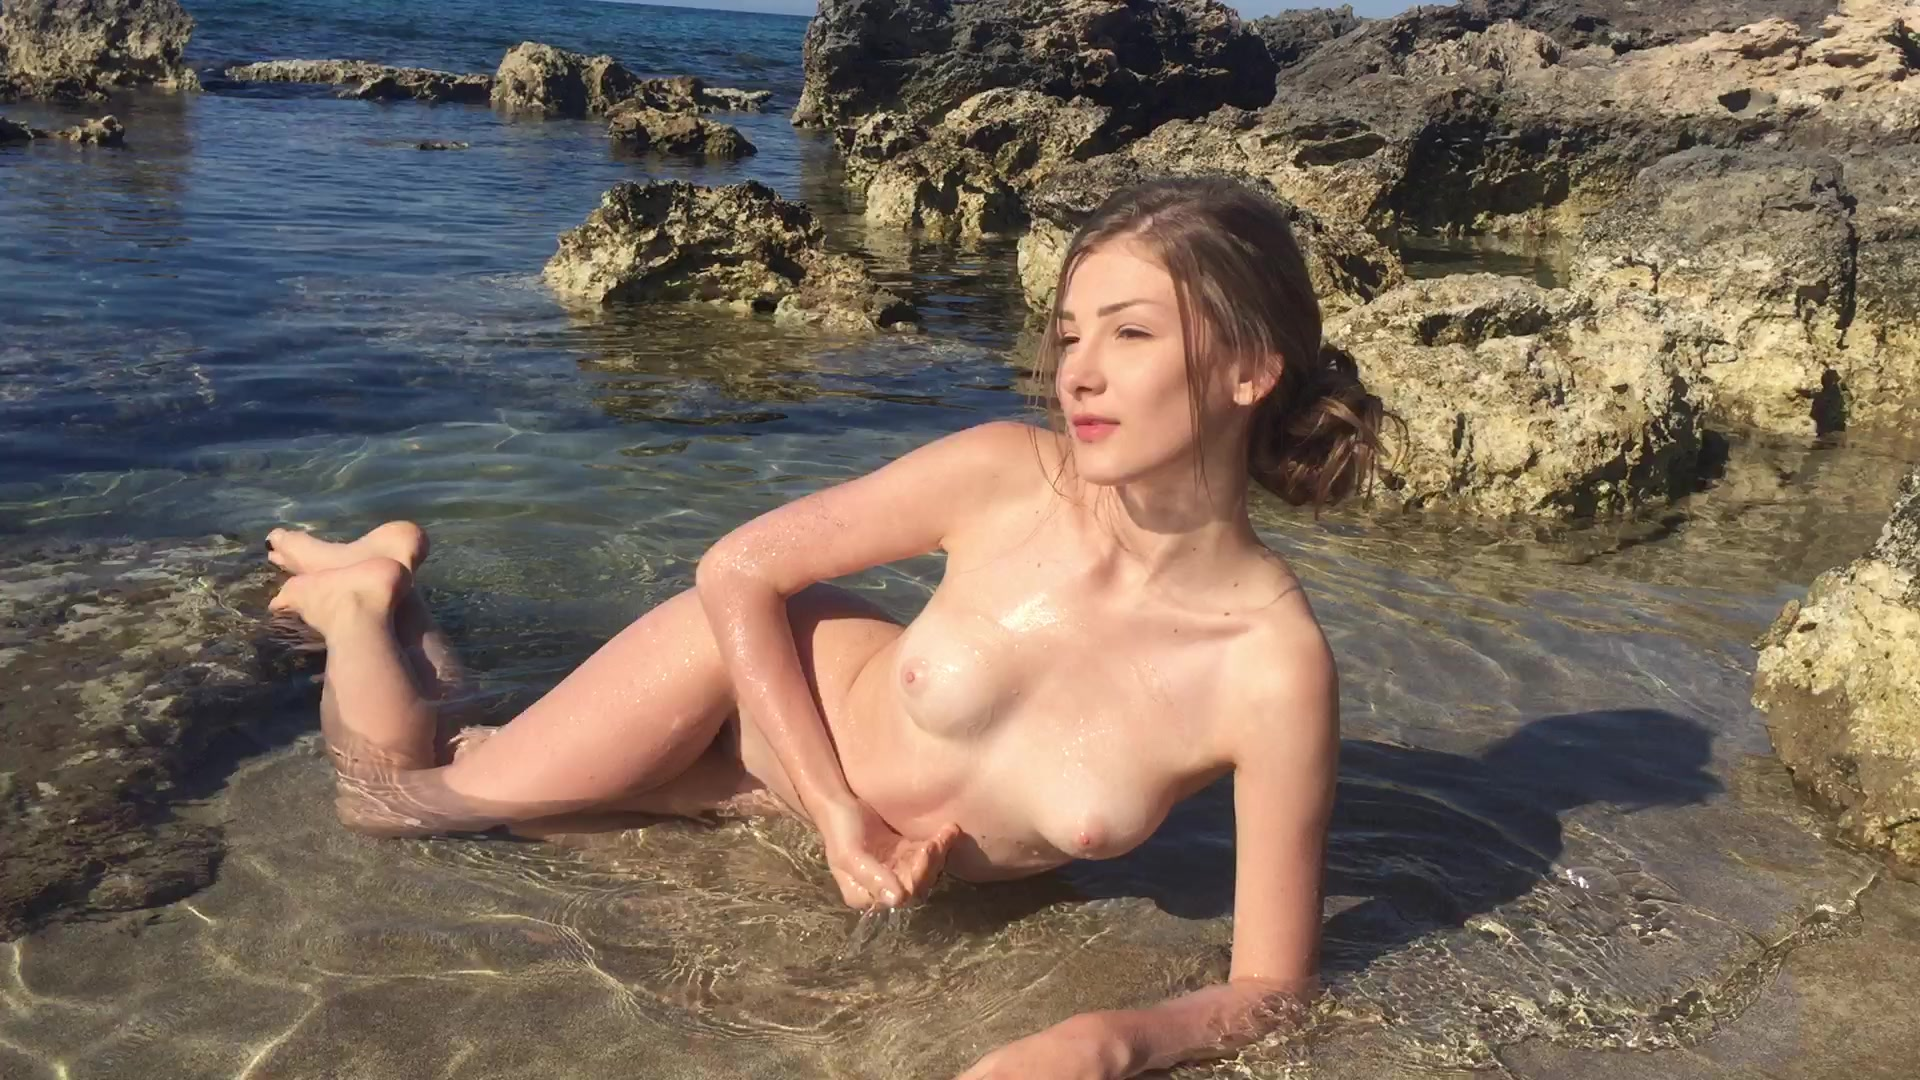 Skinny blonde Fressia is lying nude on the beach and stroking her shaved cunt